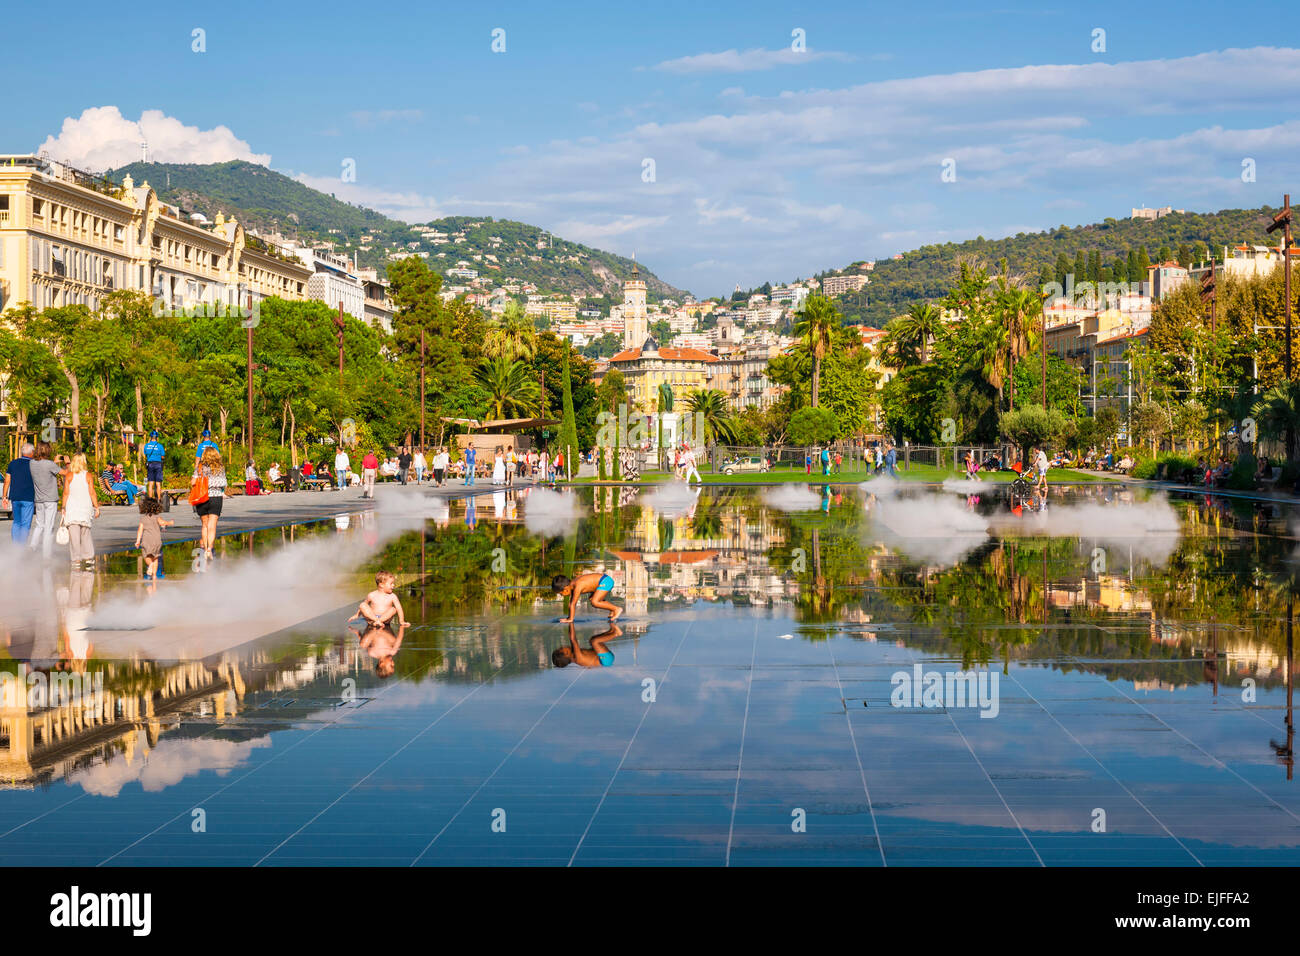 NICE, FRANCE - OCTOBER 2, 2014: Children playing in fountain on Promenade du Paillon reflecting the city and surrounding Stock Photo